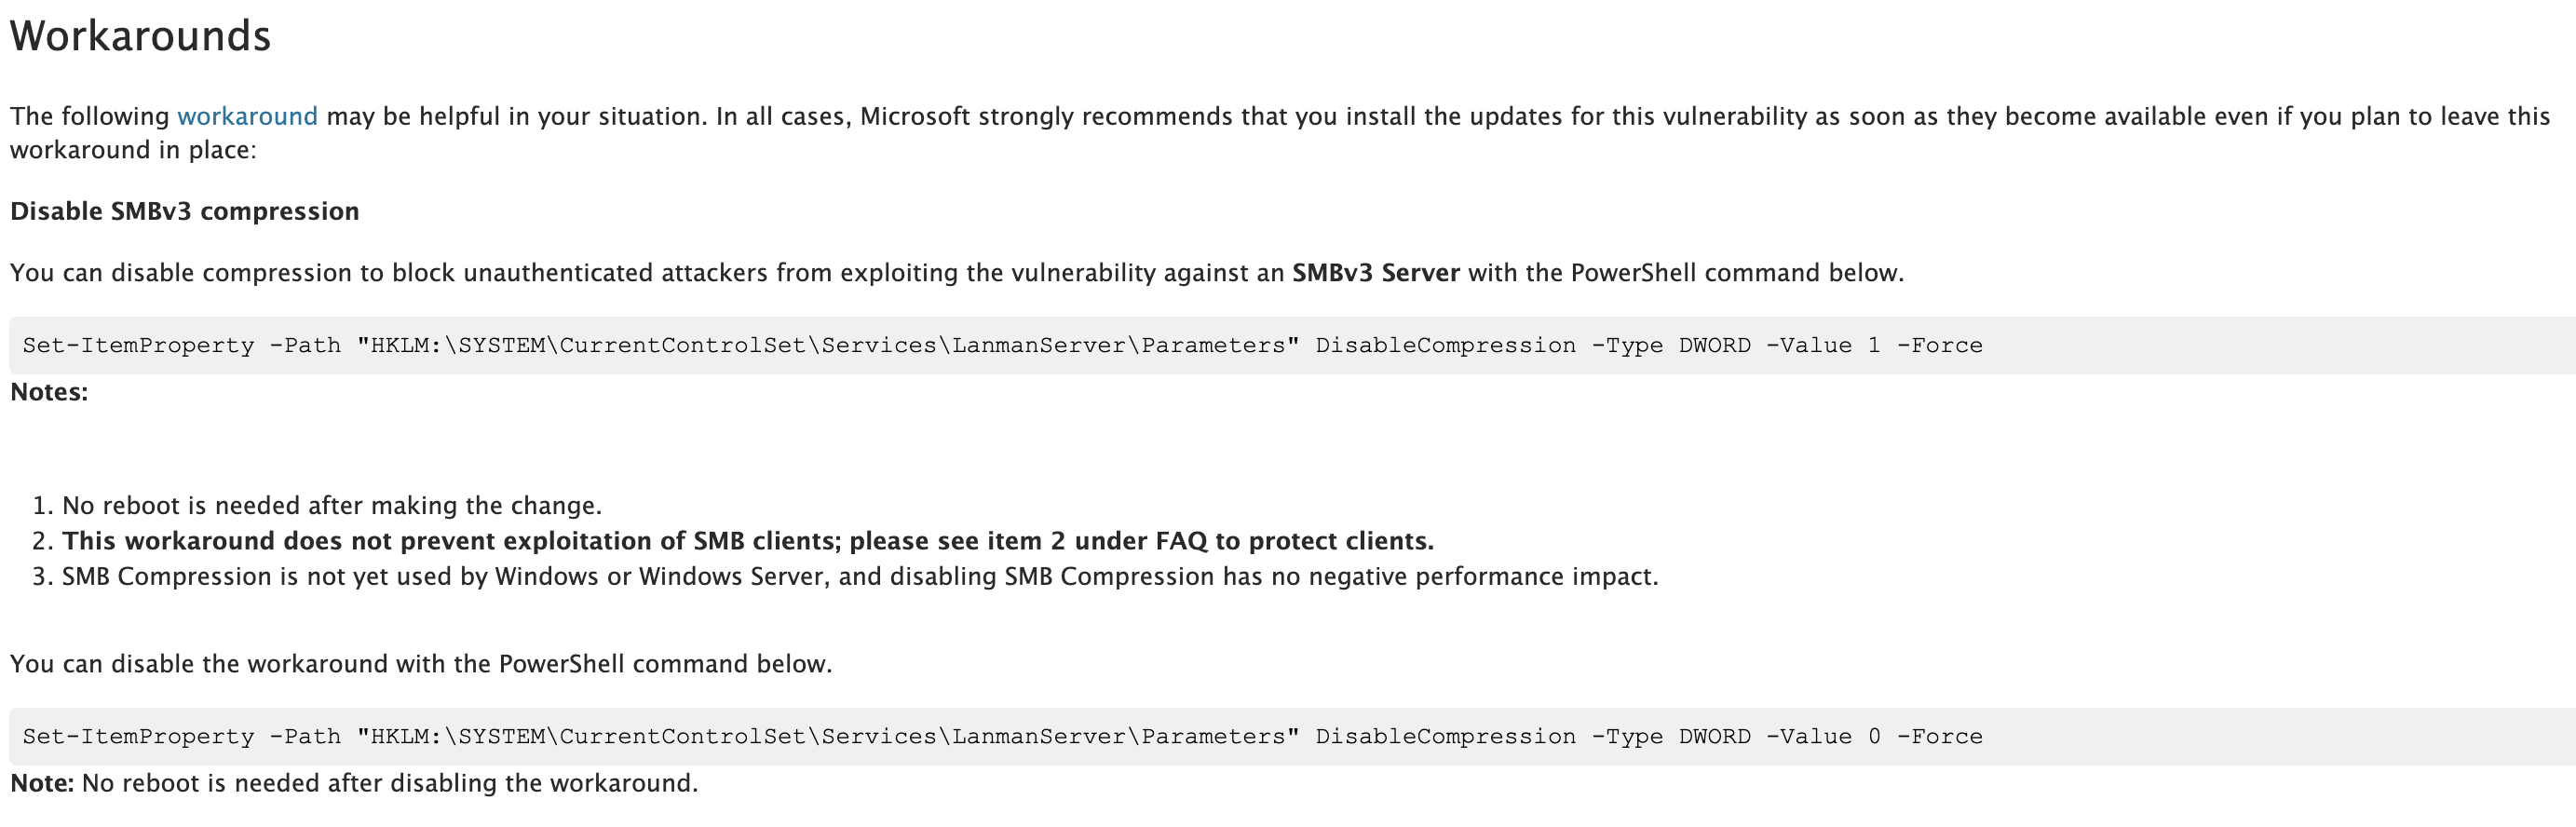 Microsoft Instructions for Disabling SMBv3 Compression